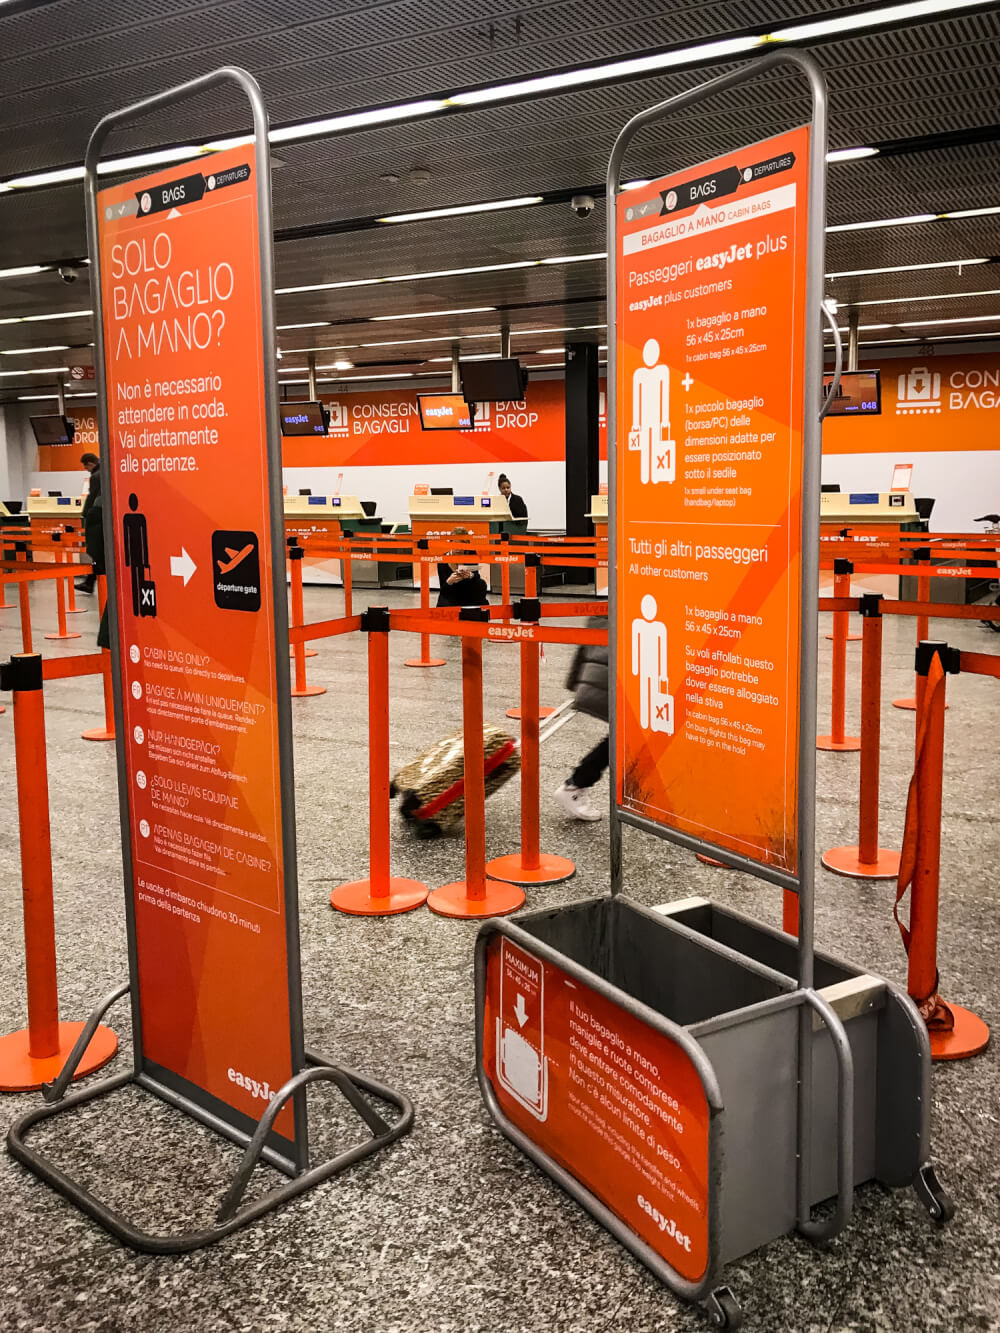 easyJet hand luggage measuring stations at an airport